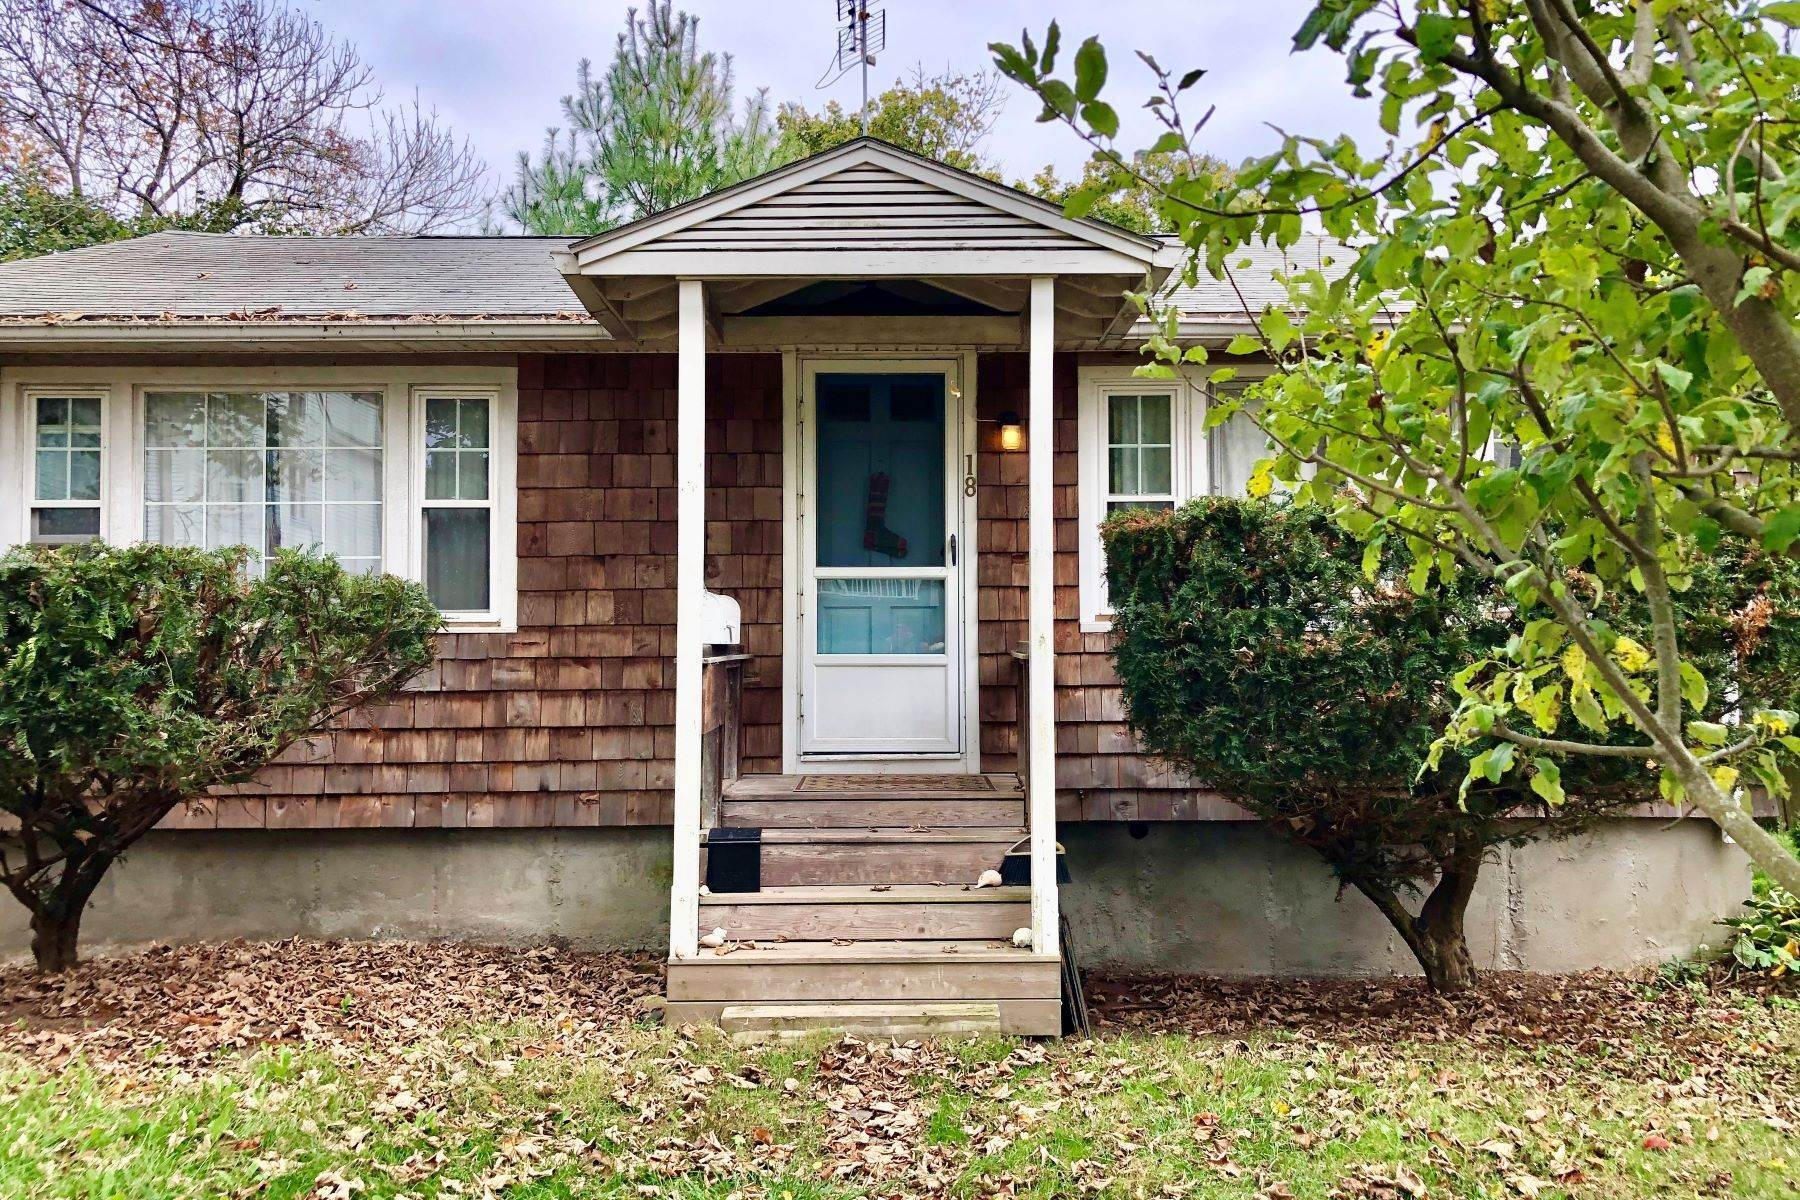 Single Family Homes for Sale at An Opportunity on Weatherly 18 Weatherly Avenue Newport, Rhode Island 02840 United States